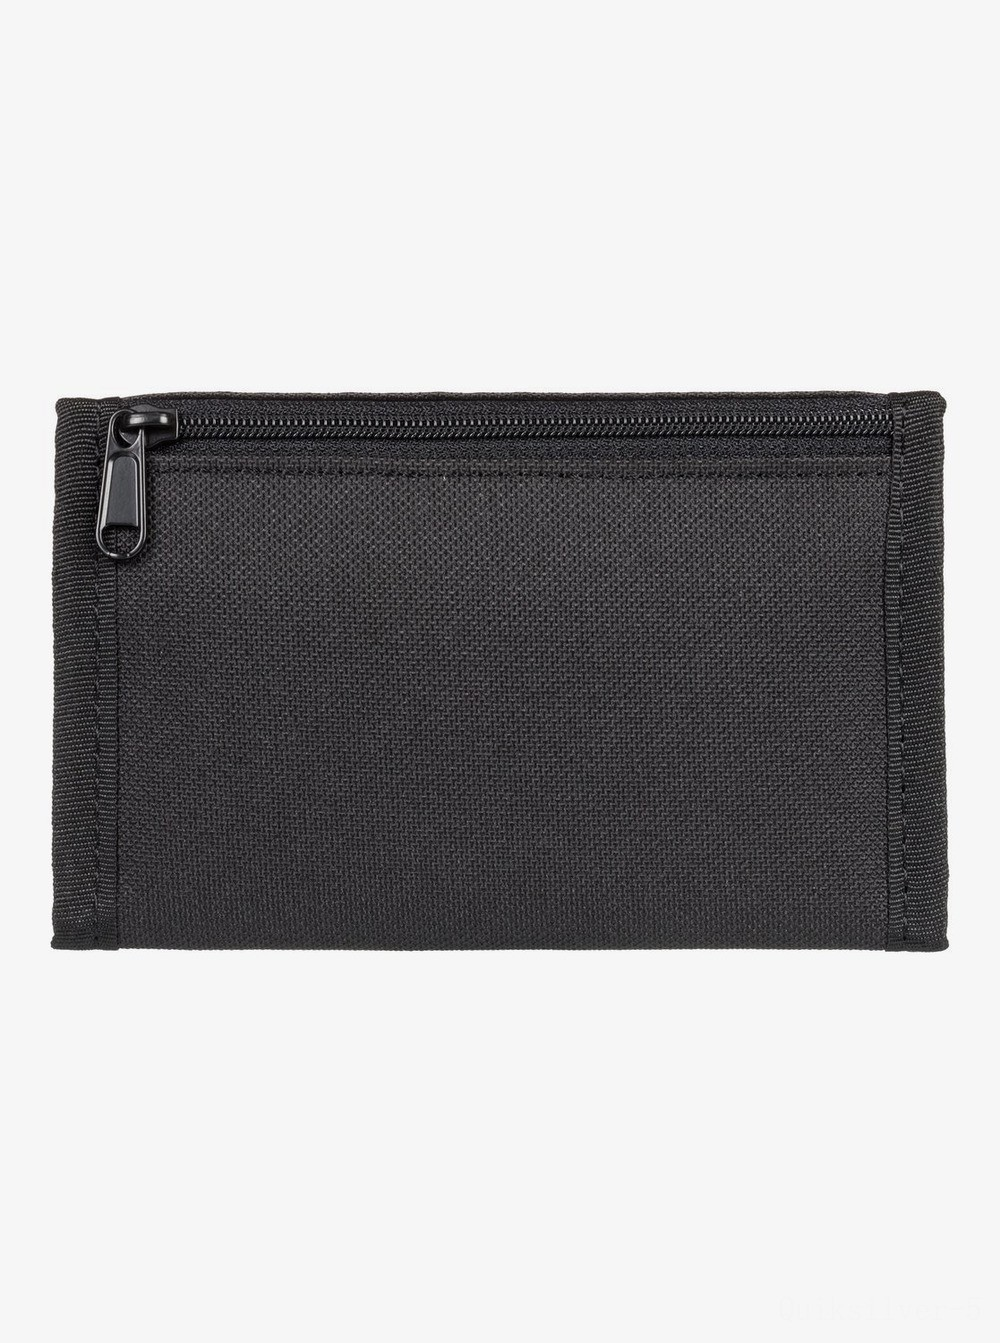 best price the everydaily tri-fold wallet - black last chance limited sale